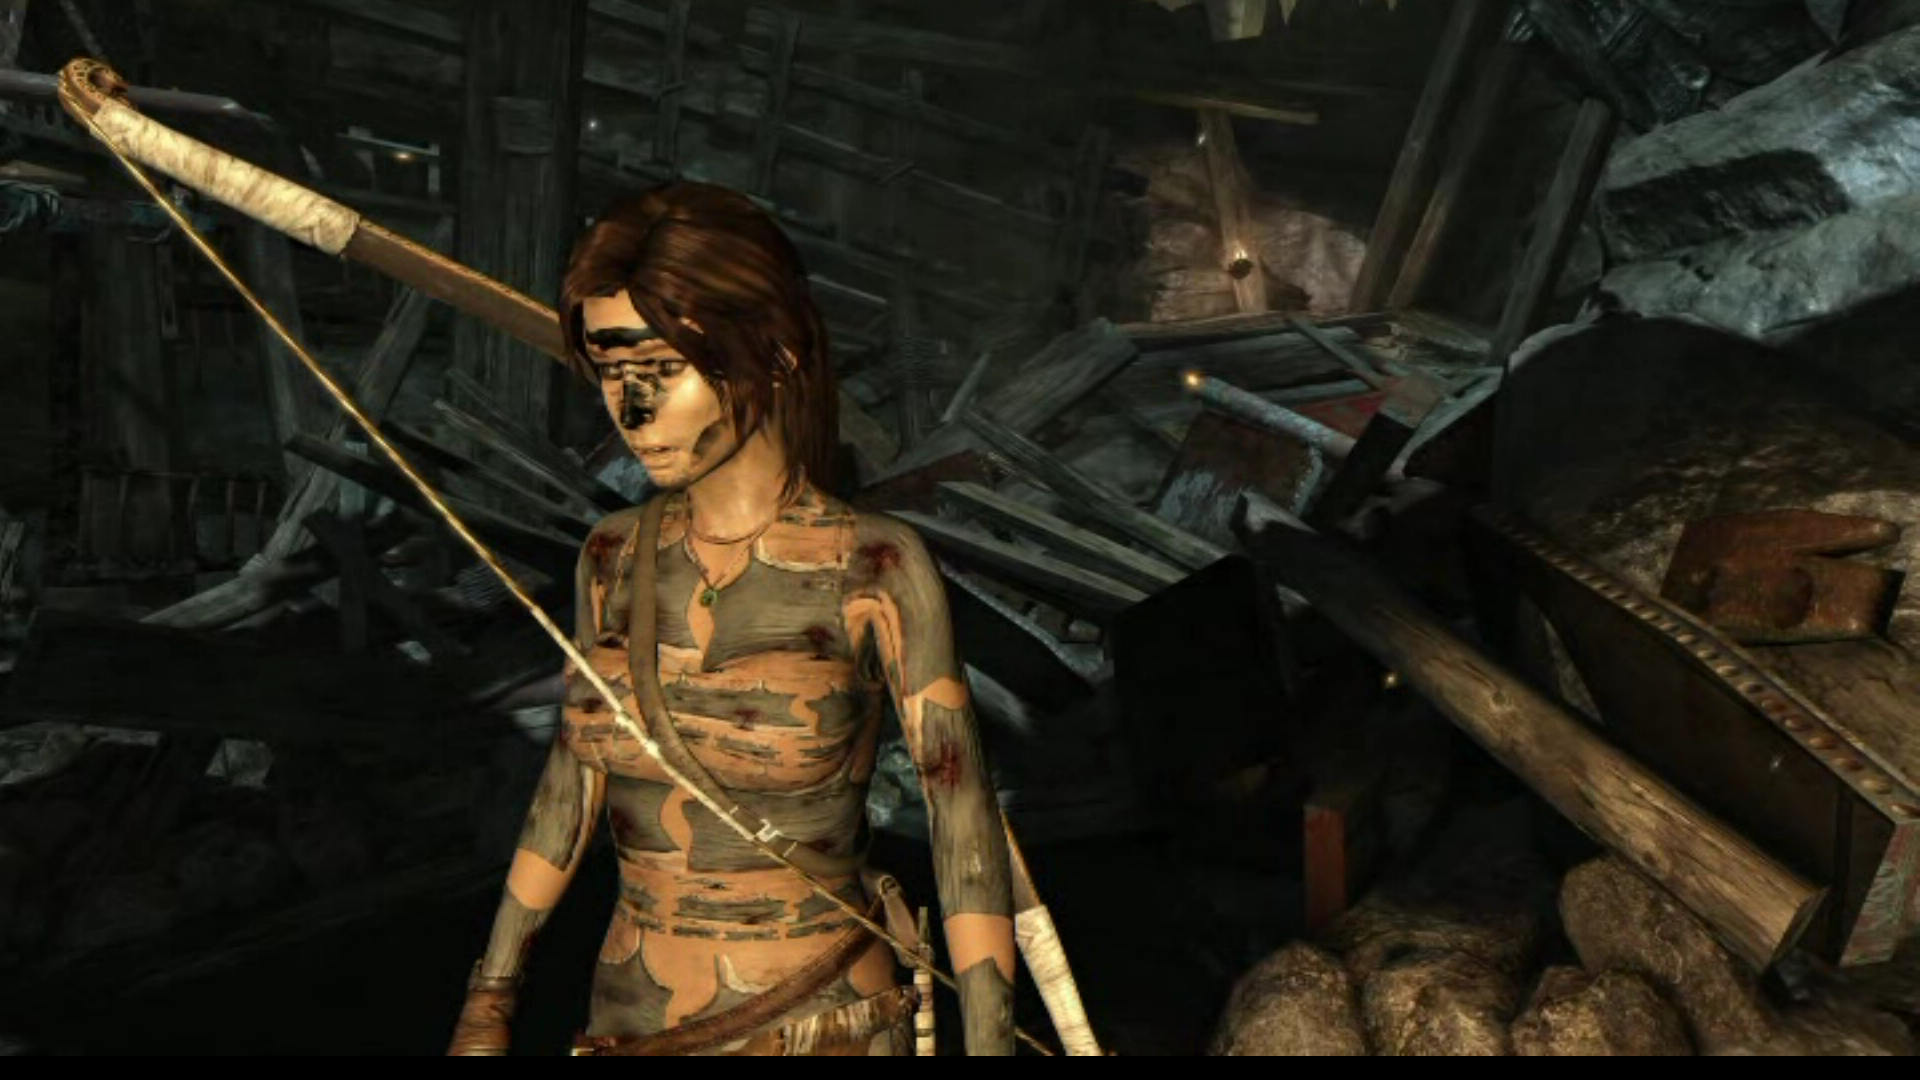 Tomb raider 2013 naked hack sexual clips